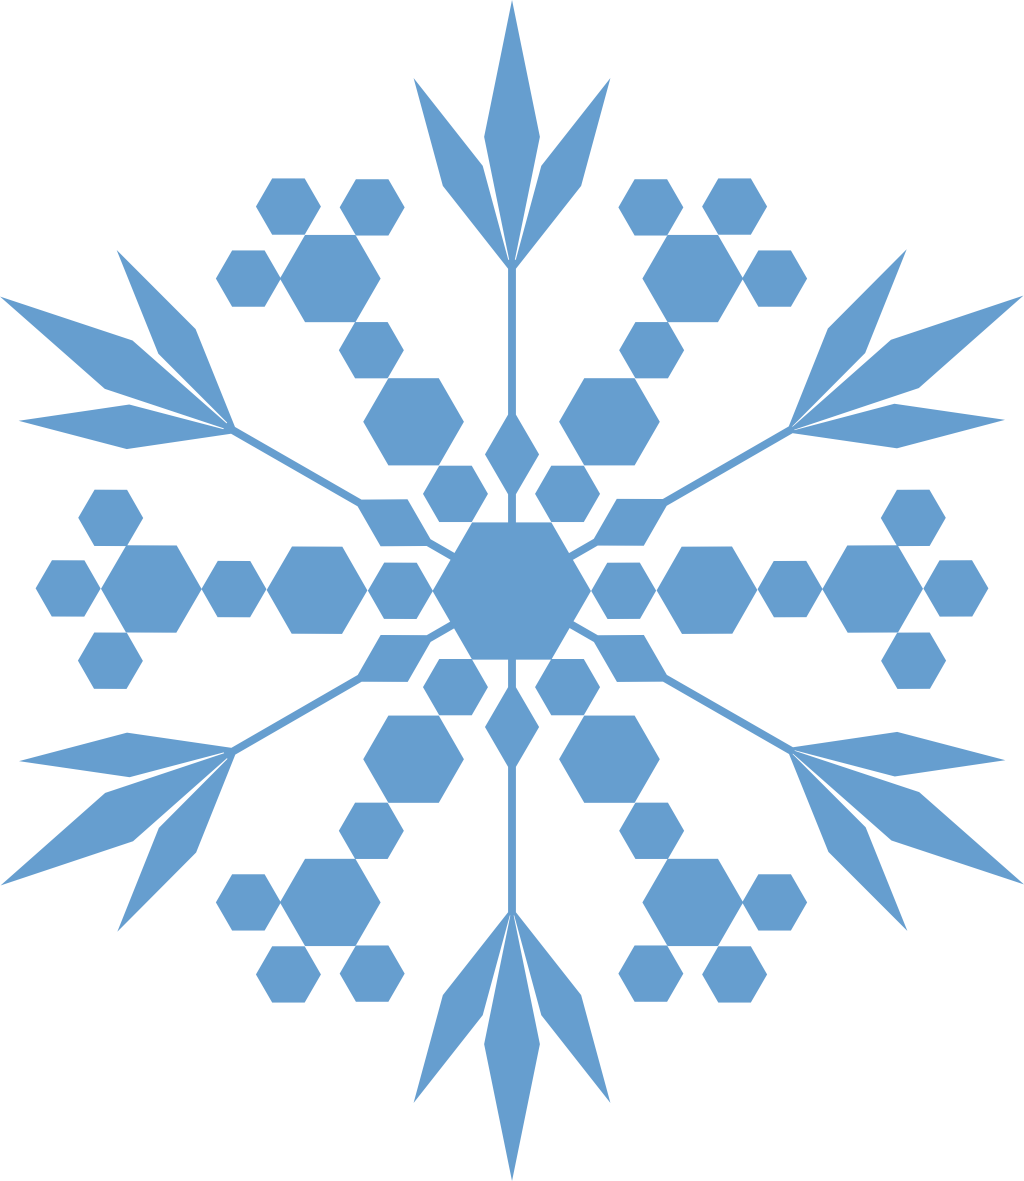 Disney paper snowflake clipart image royalty free library Pin by Jeny Chique on Marcos Frozen Disney | Pinterest image royalty free library